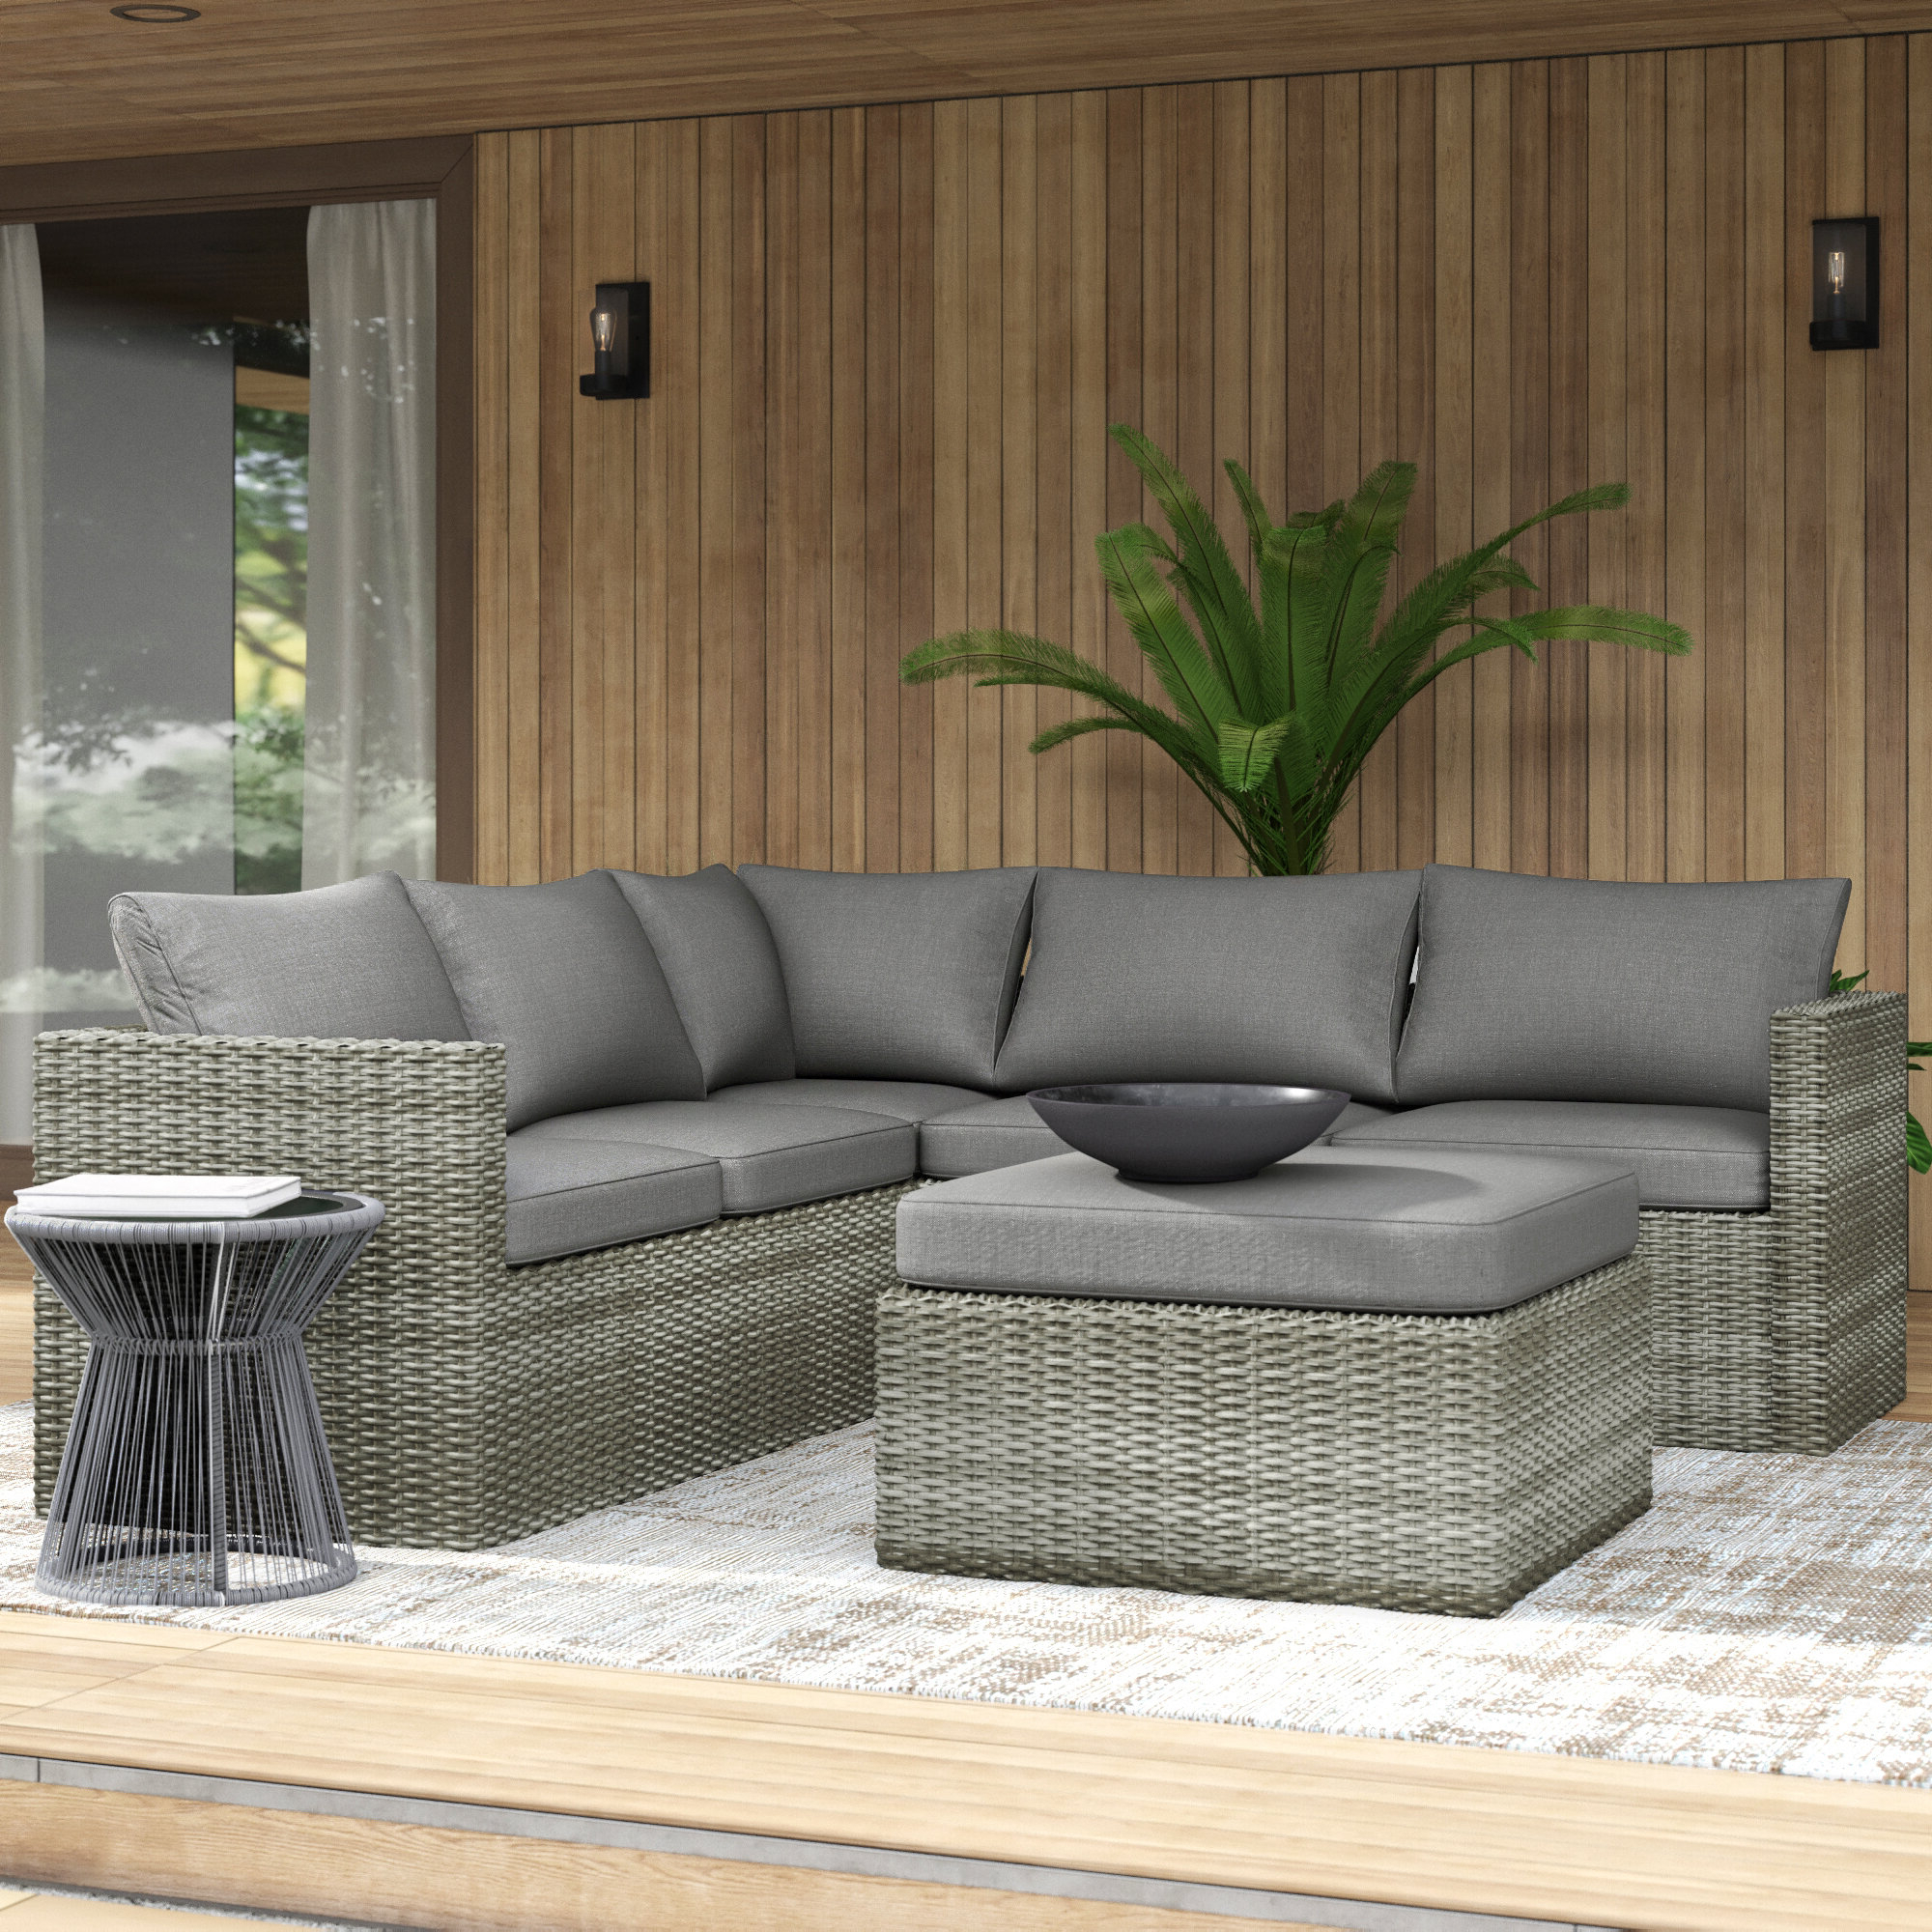 Newest Lorentzen Patio Sectional With Cushions Intended For Ostrowski Patio Sectionals With Cushions (View 6 of 25)